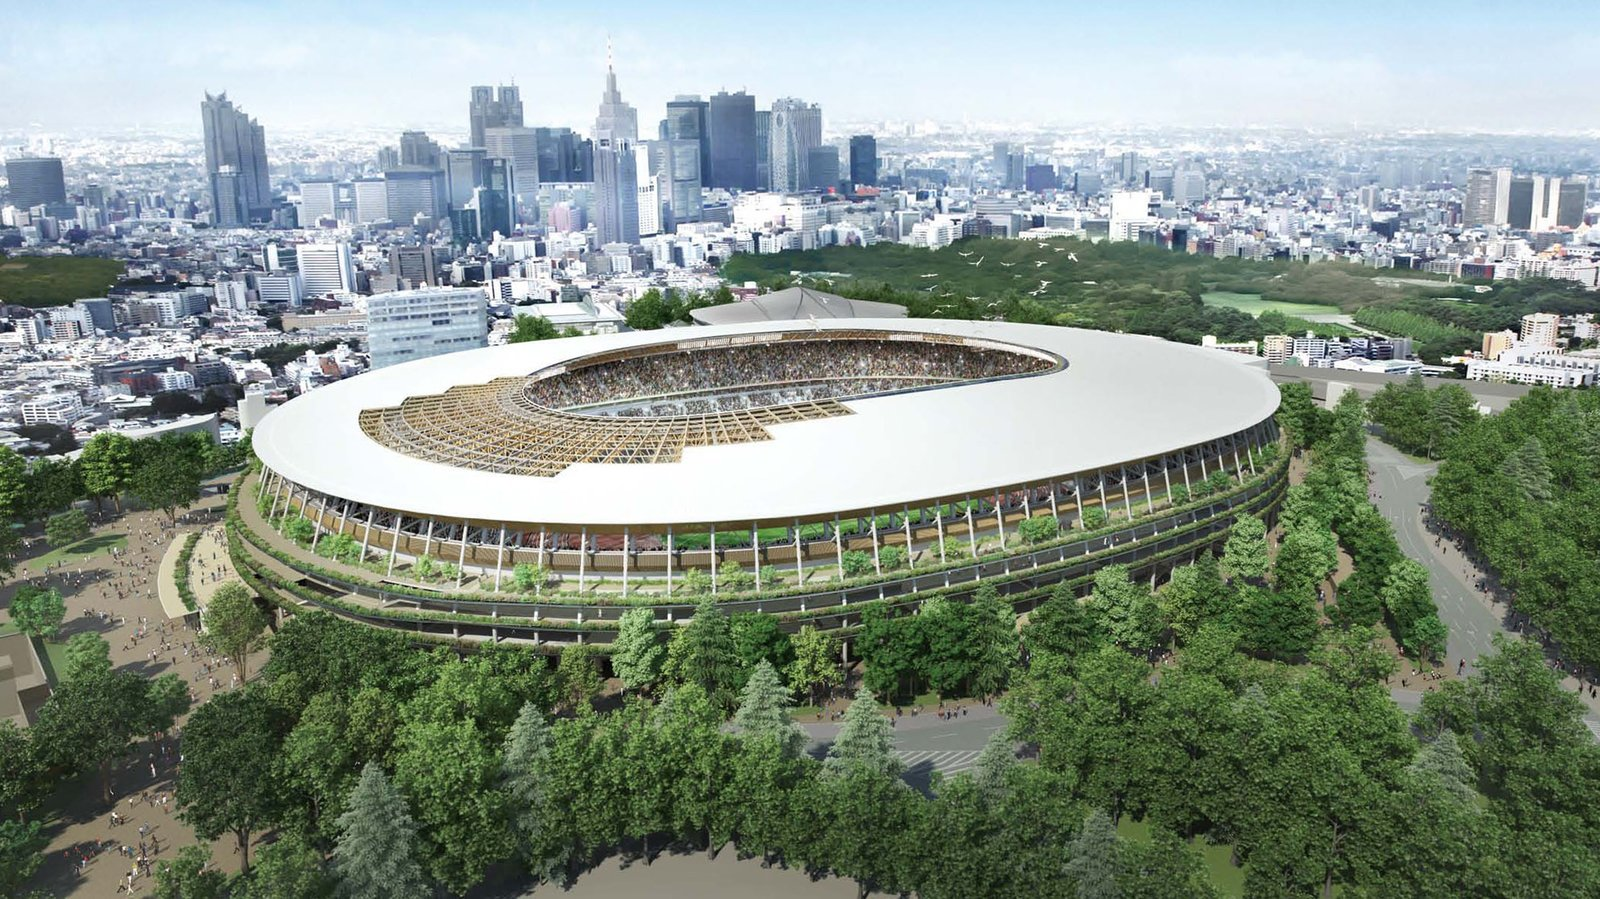 Designed to resemble a traditional Japanese temple, Kuma won the bid to construct the Japan National Stadium for the 2020 Olympics when the Prime Minister scrapped the original plan to go with Zaha Hadid in favor of homegrown talent. Architect Spotlight: 12 Works by Japanese Architect Kengo Kuma - Photo 13 of 13